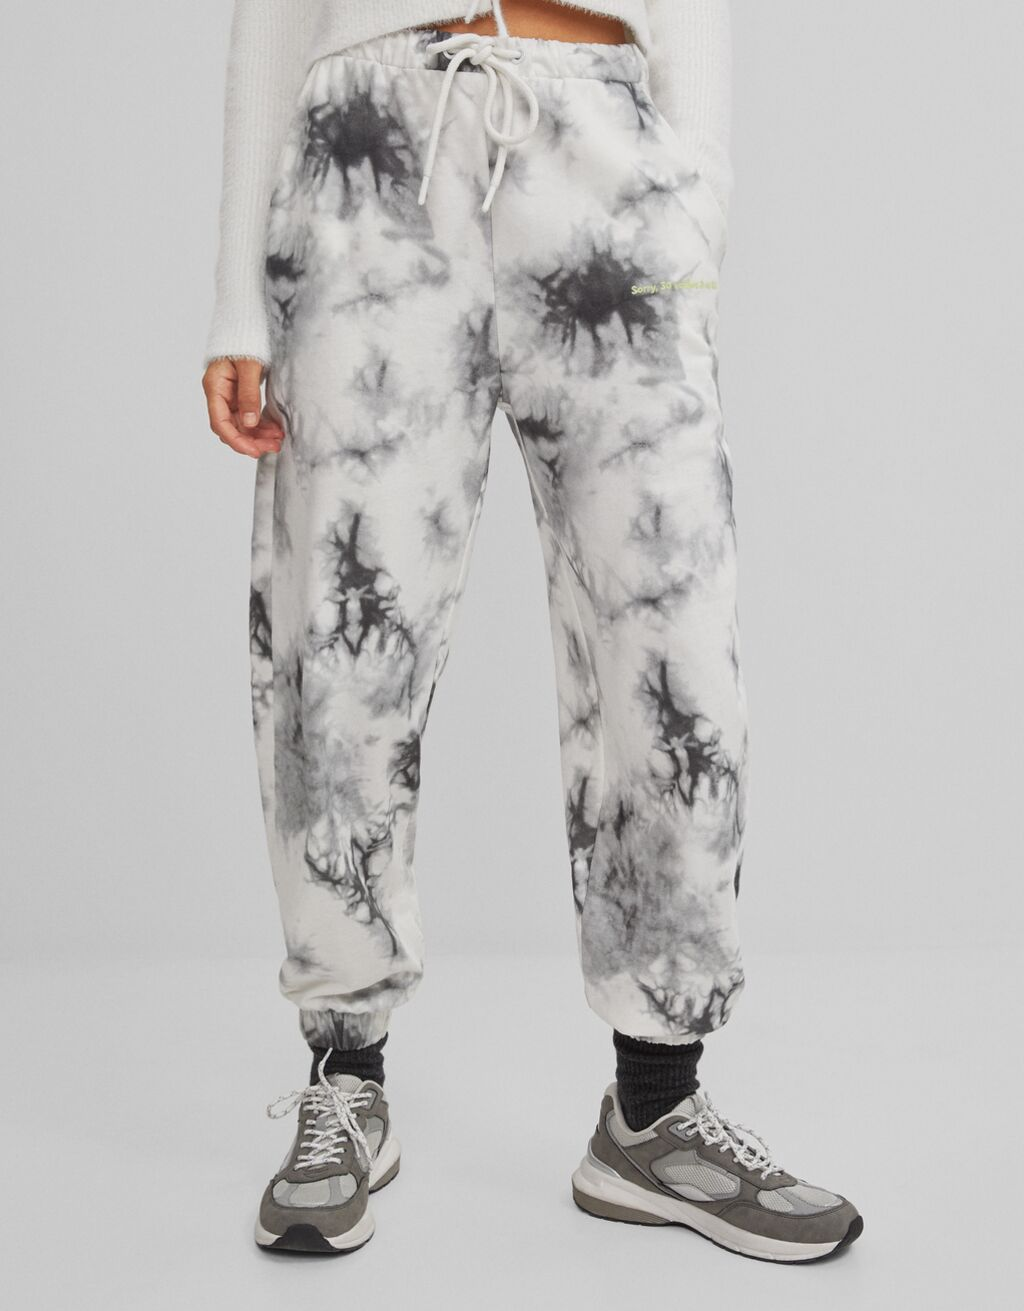 Jogging trousers with a tie-dye print